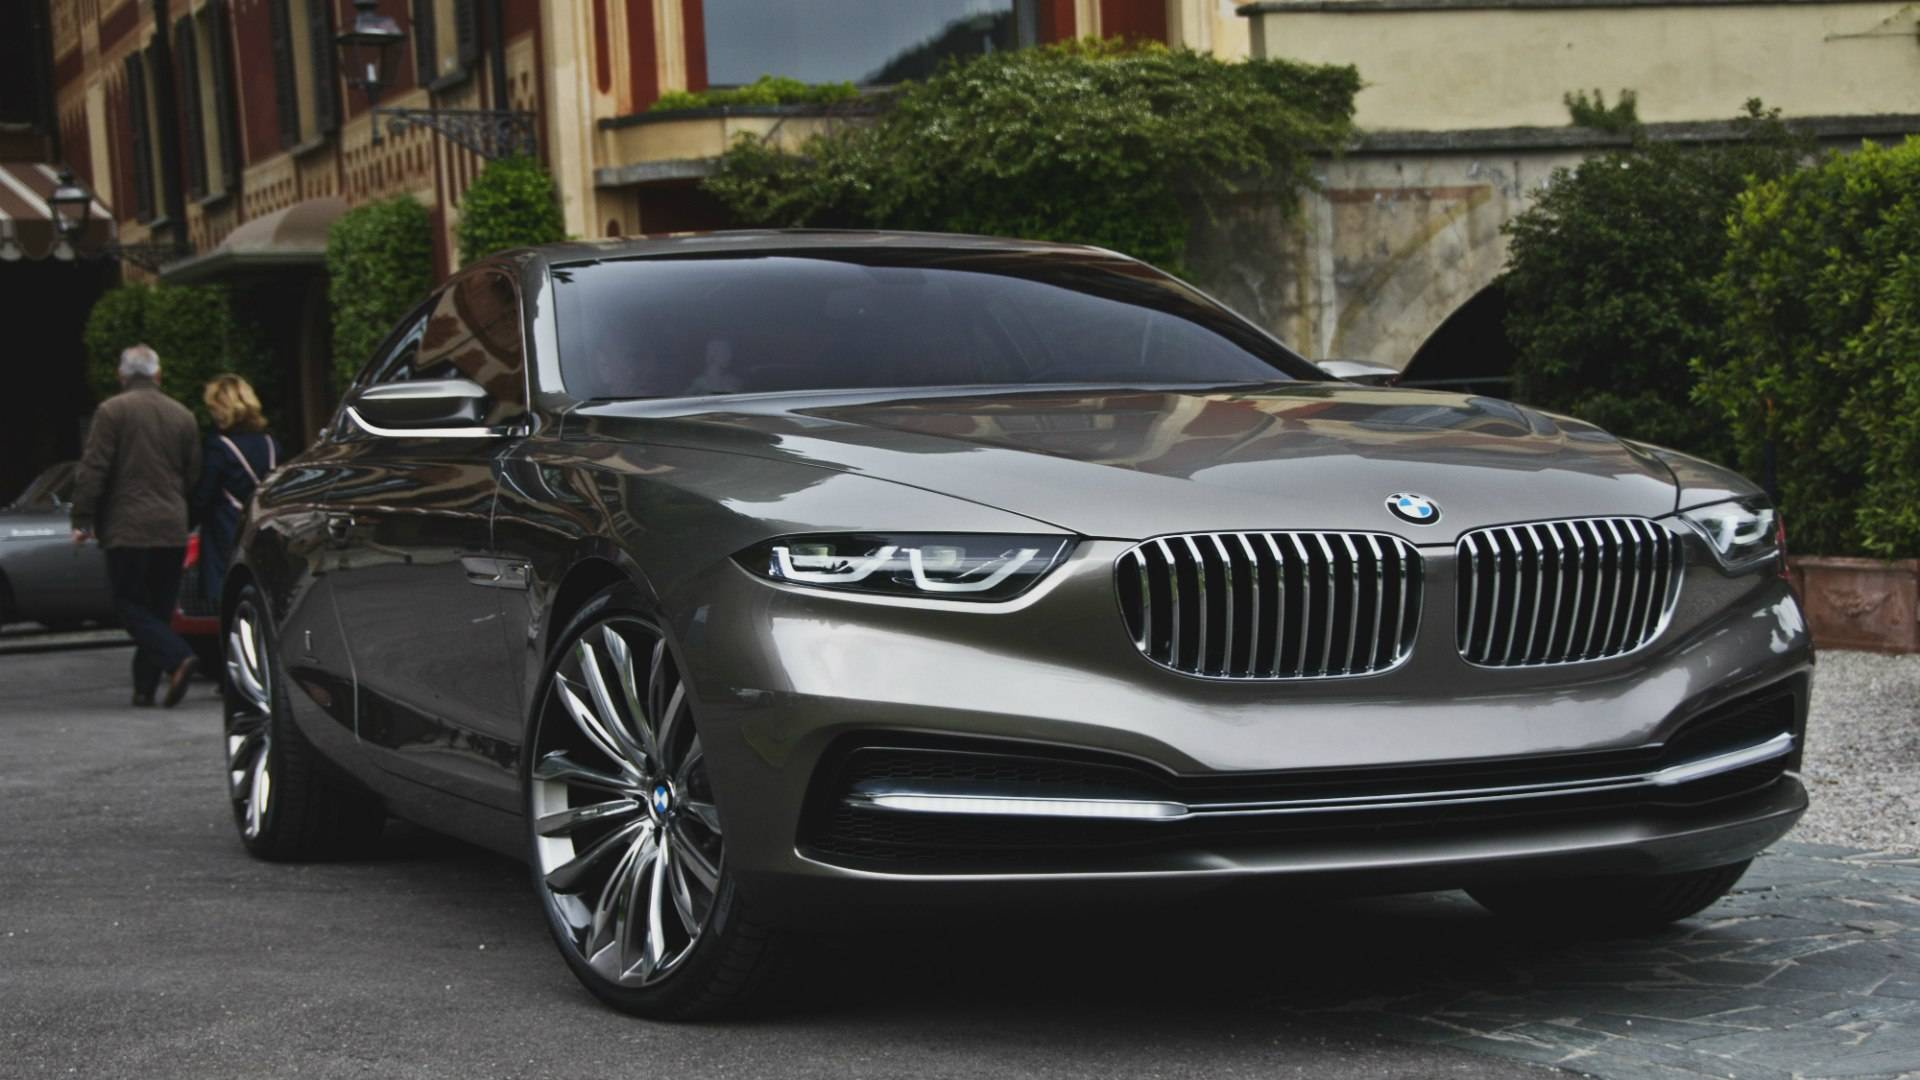 Auto___BMW___Others_BMW_Beautiful_BMW_Pininfarina_Gran_Lusso_Coupe_096212_